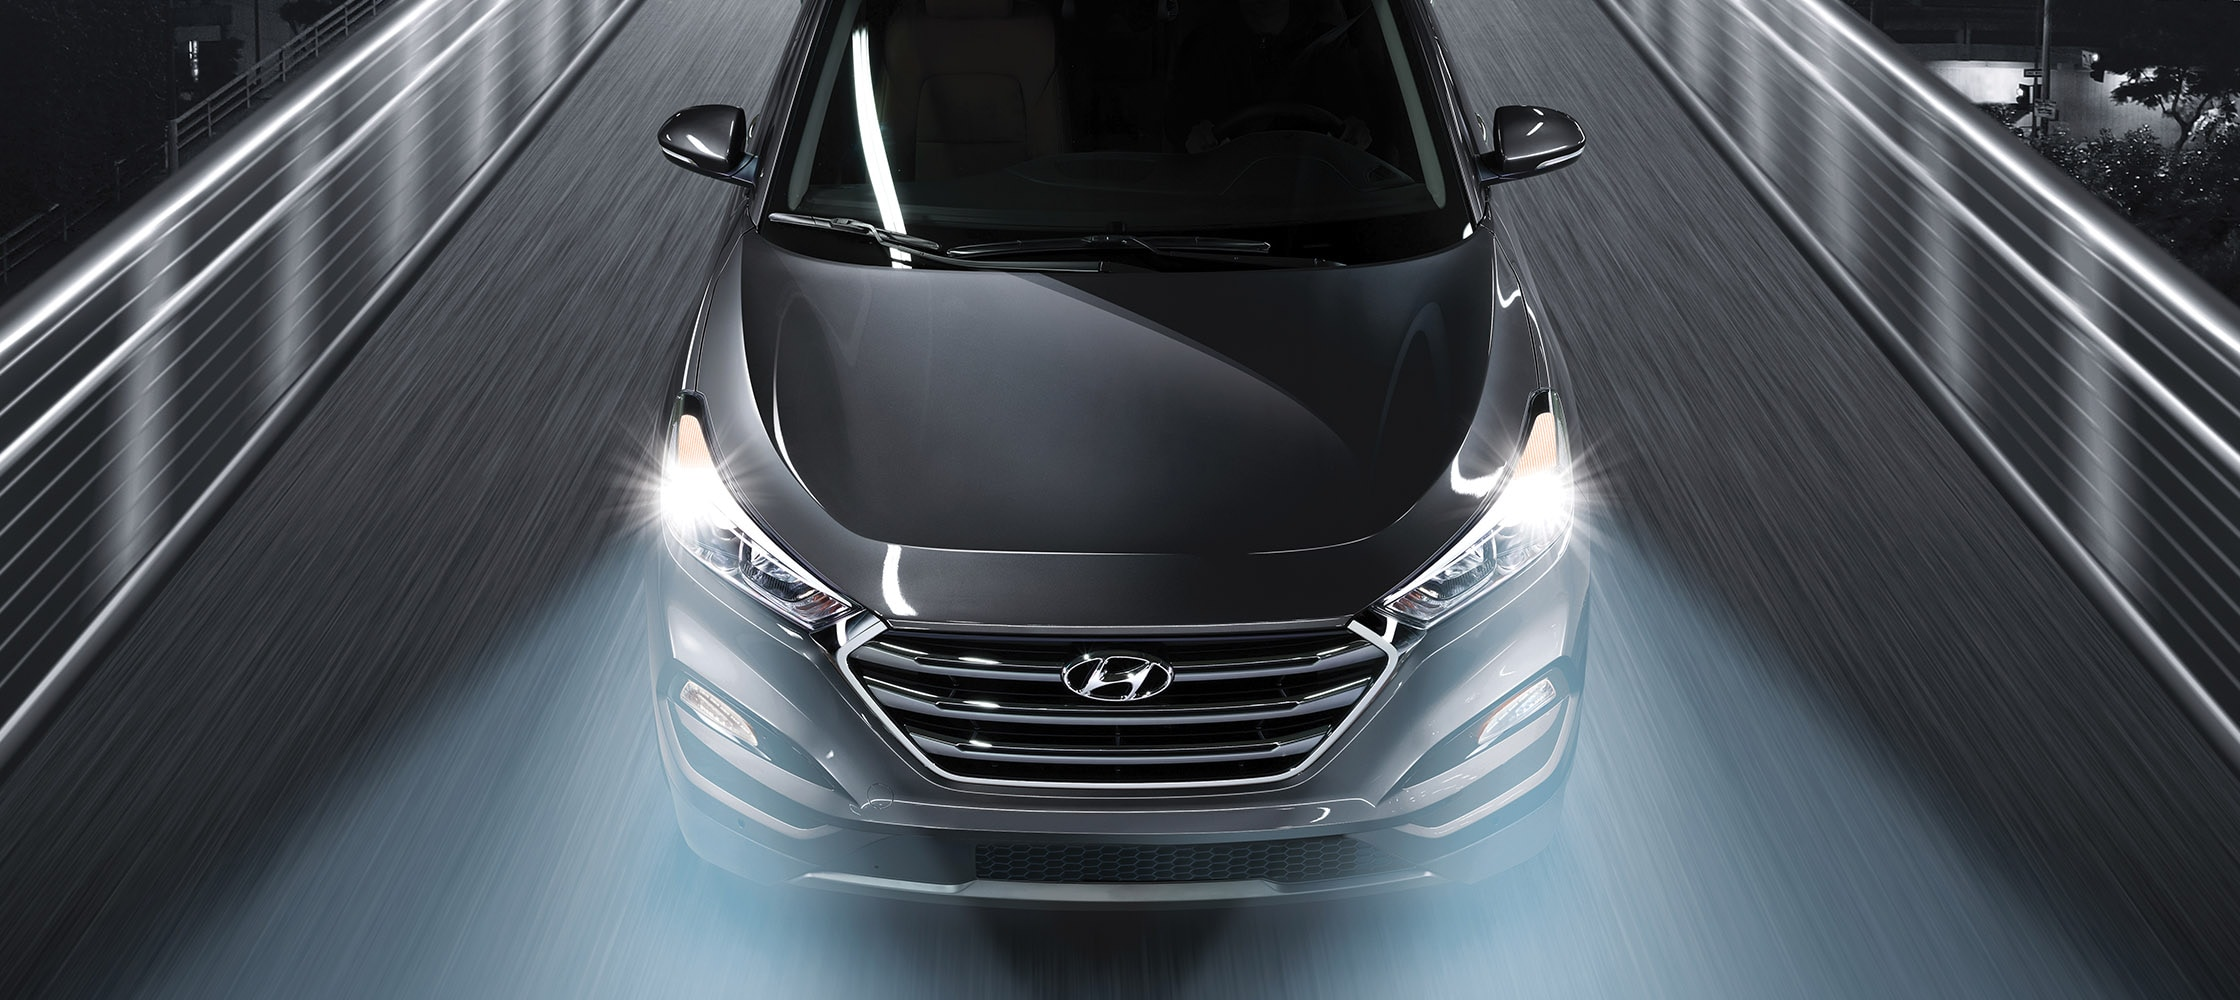 Exterior photo of silver Hyundai Tucson 2017 CUV driving in dark space with bright LED headlights